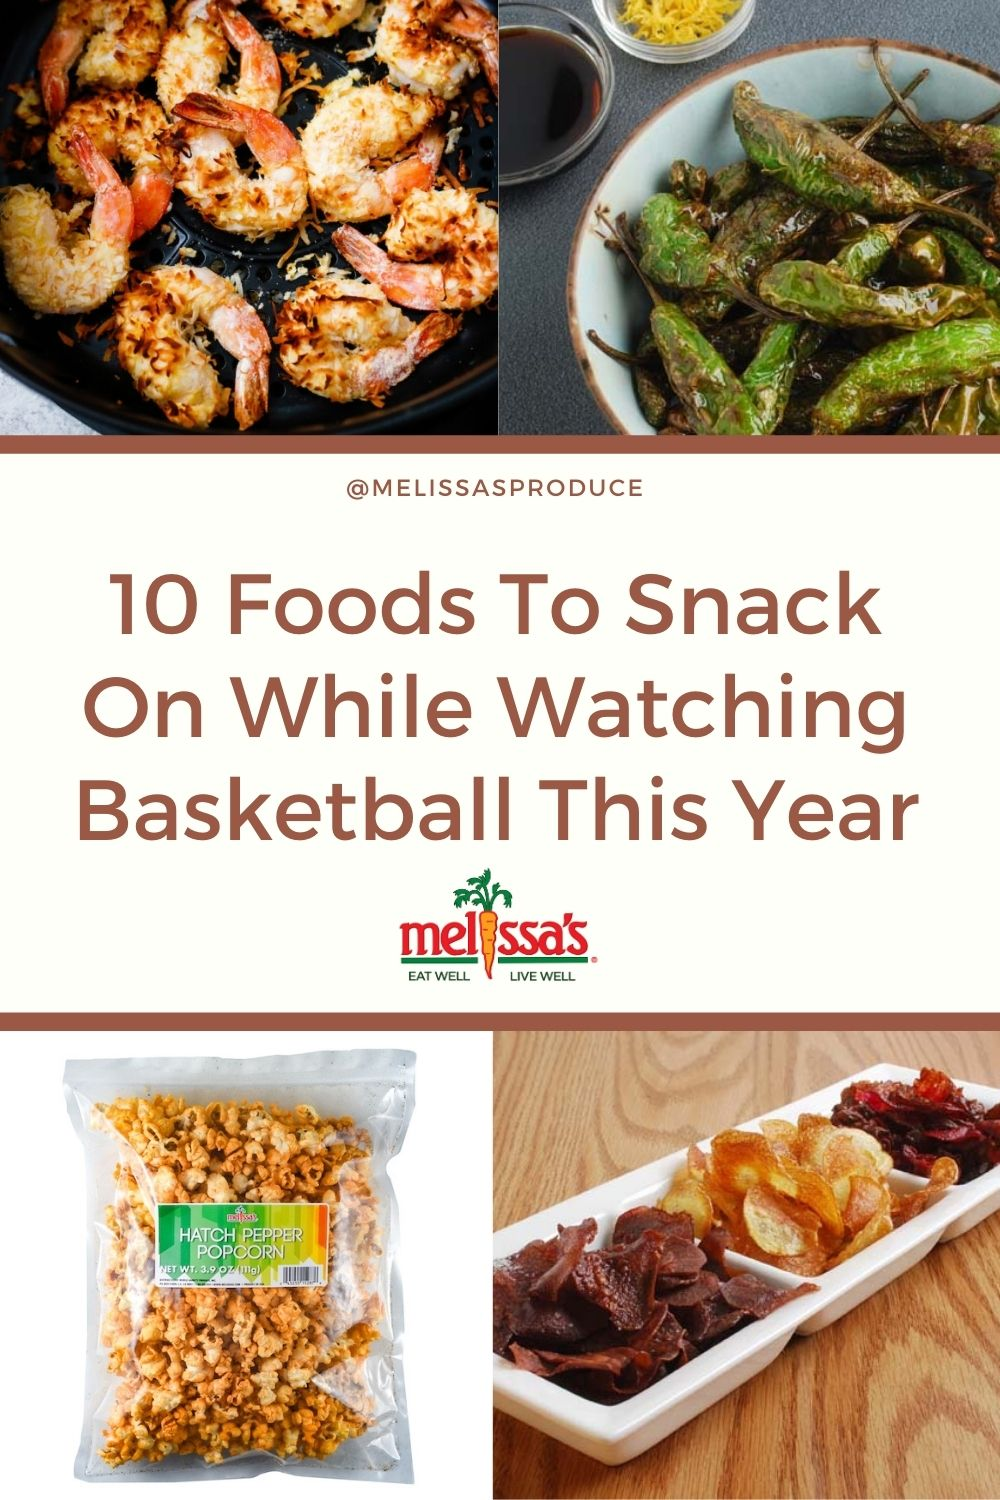 10 Foods To Snack On While Watching Basketball This Year